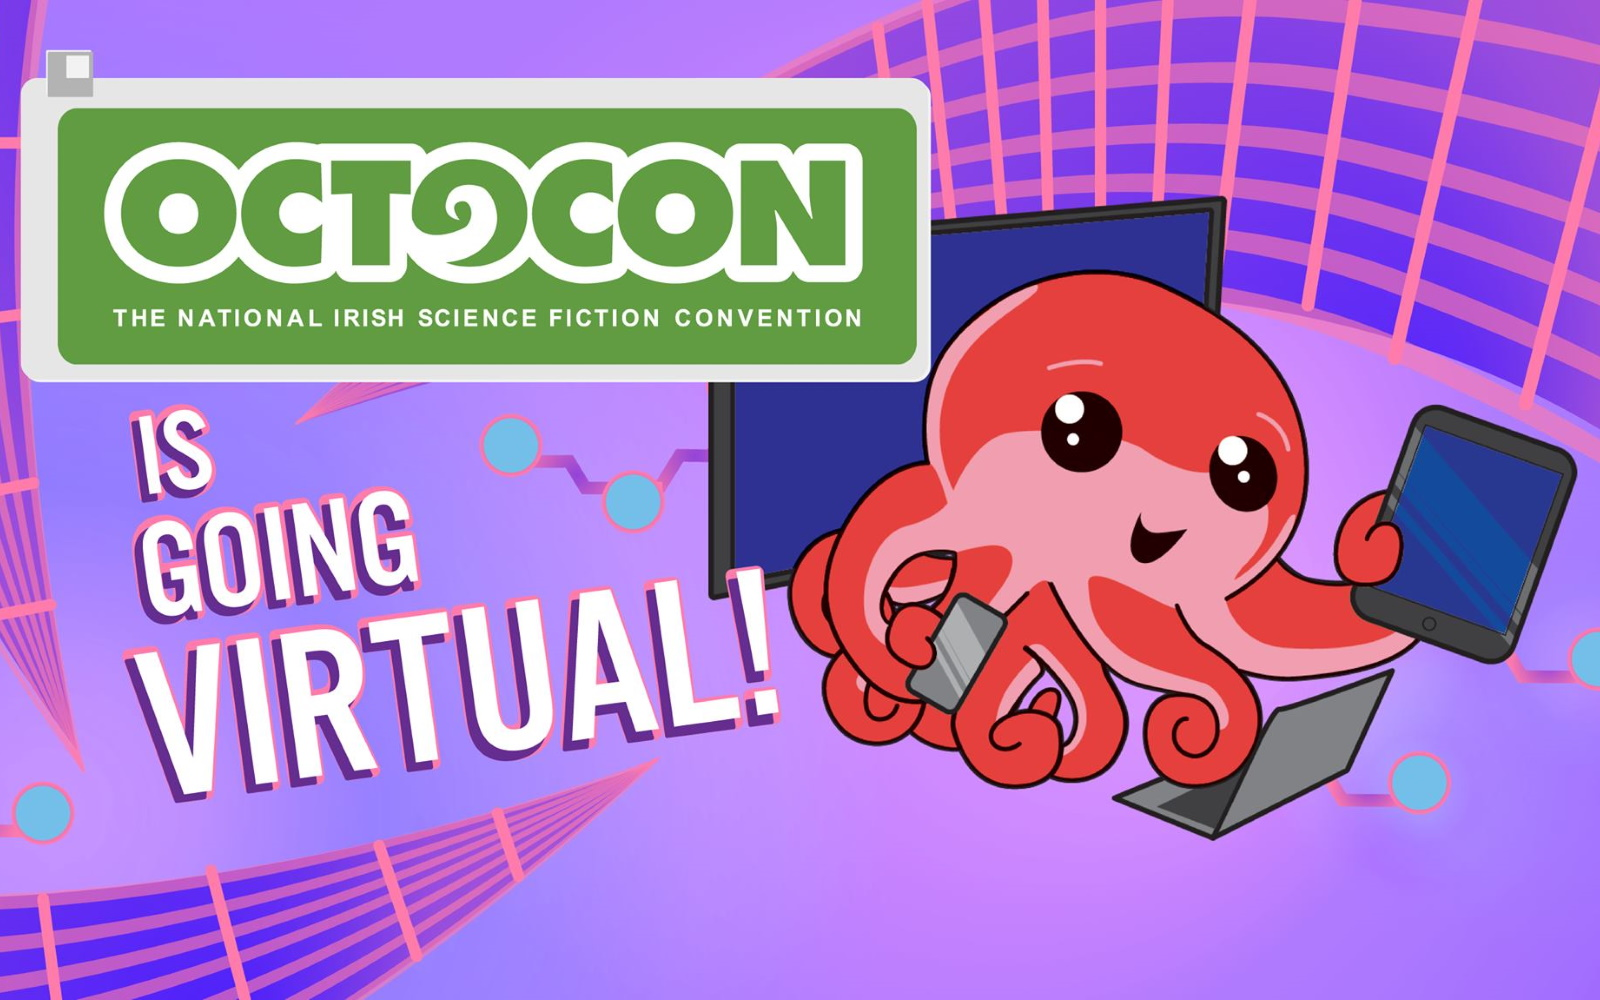 Octocon 2020 Goes Virtual And Free This Weekend